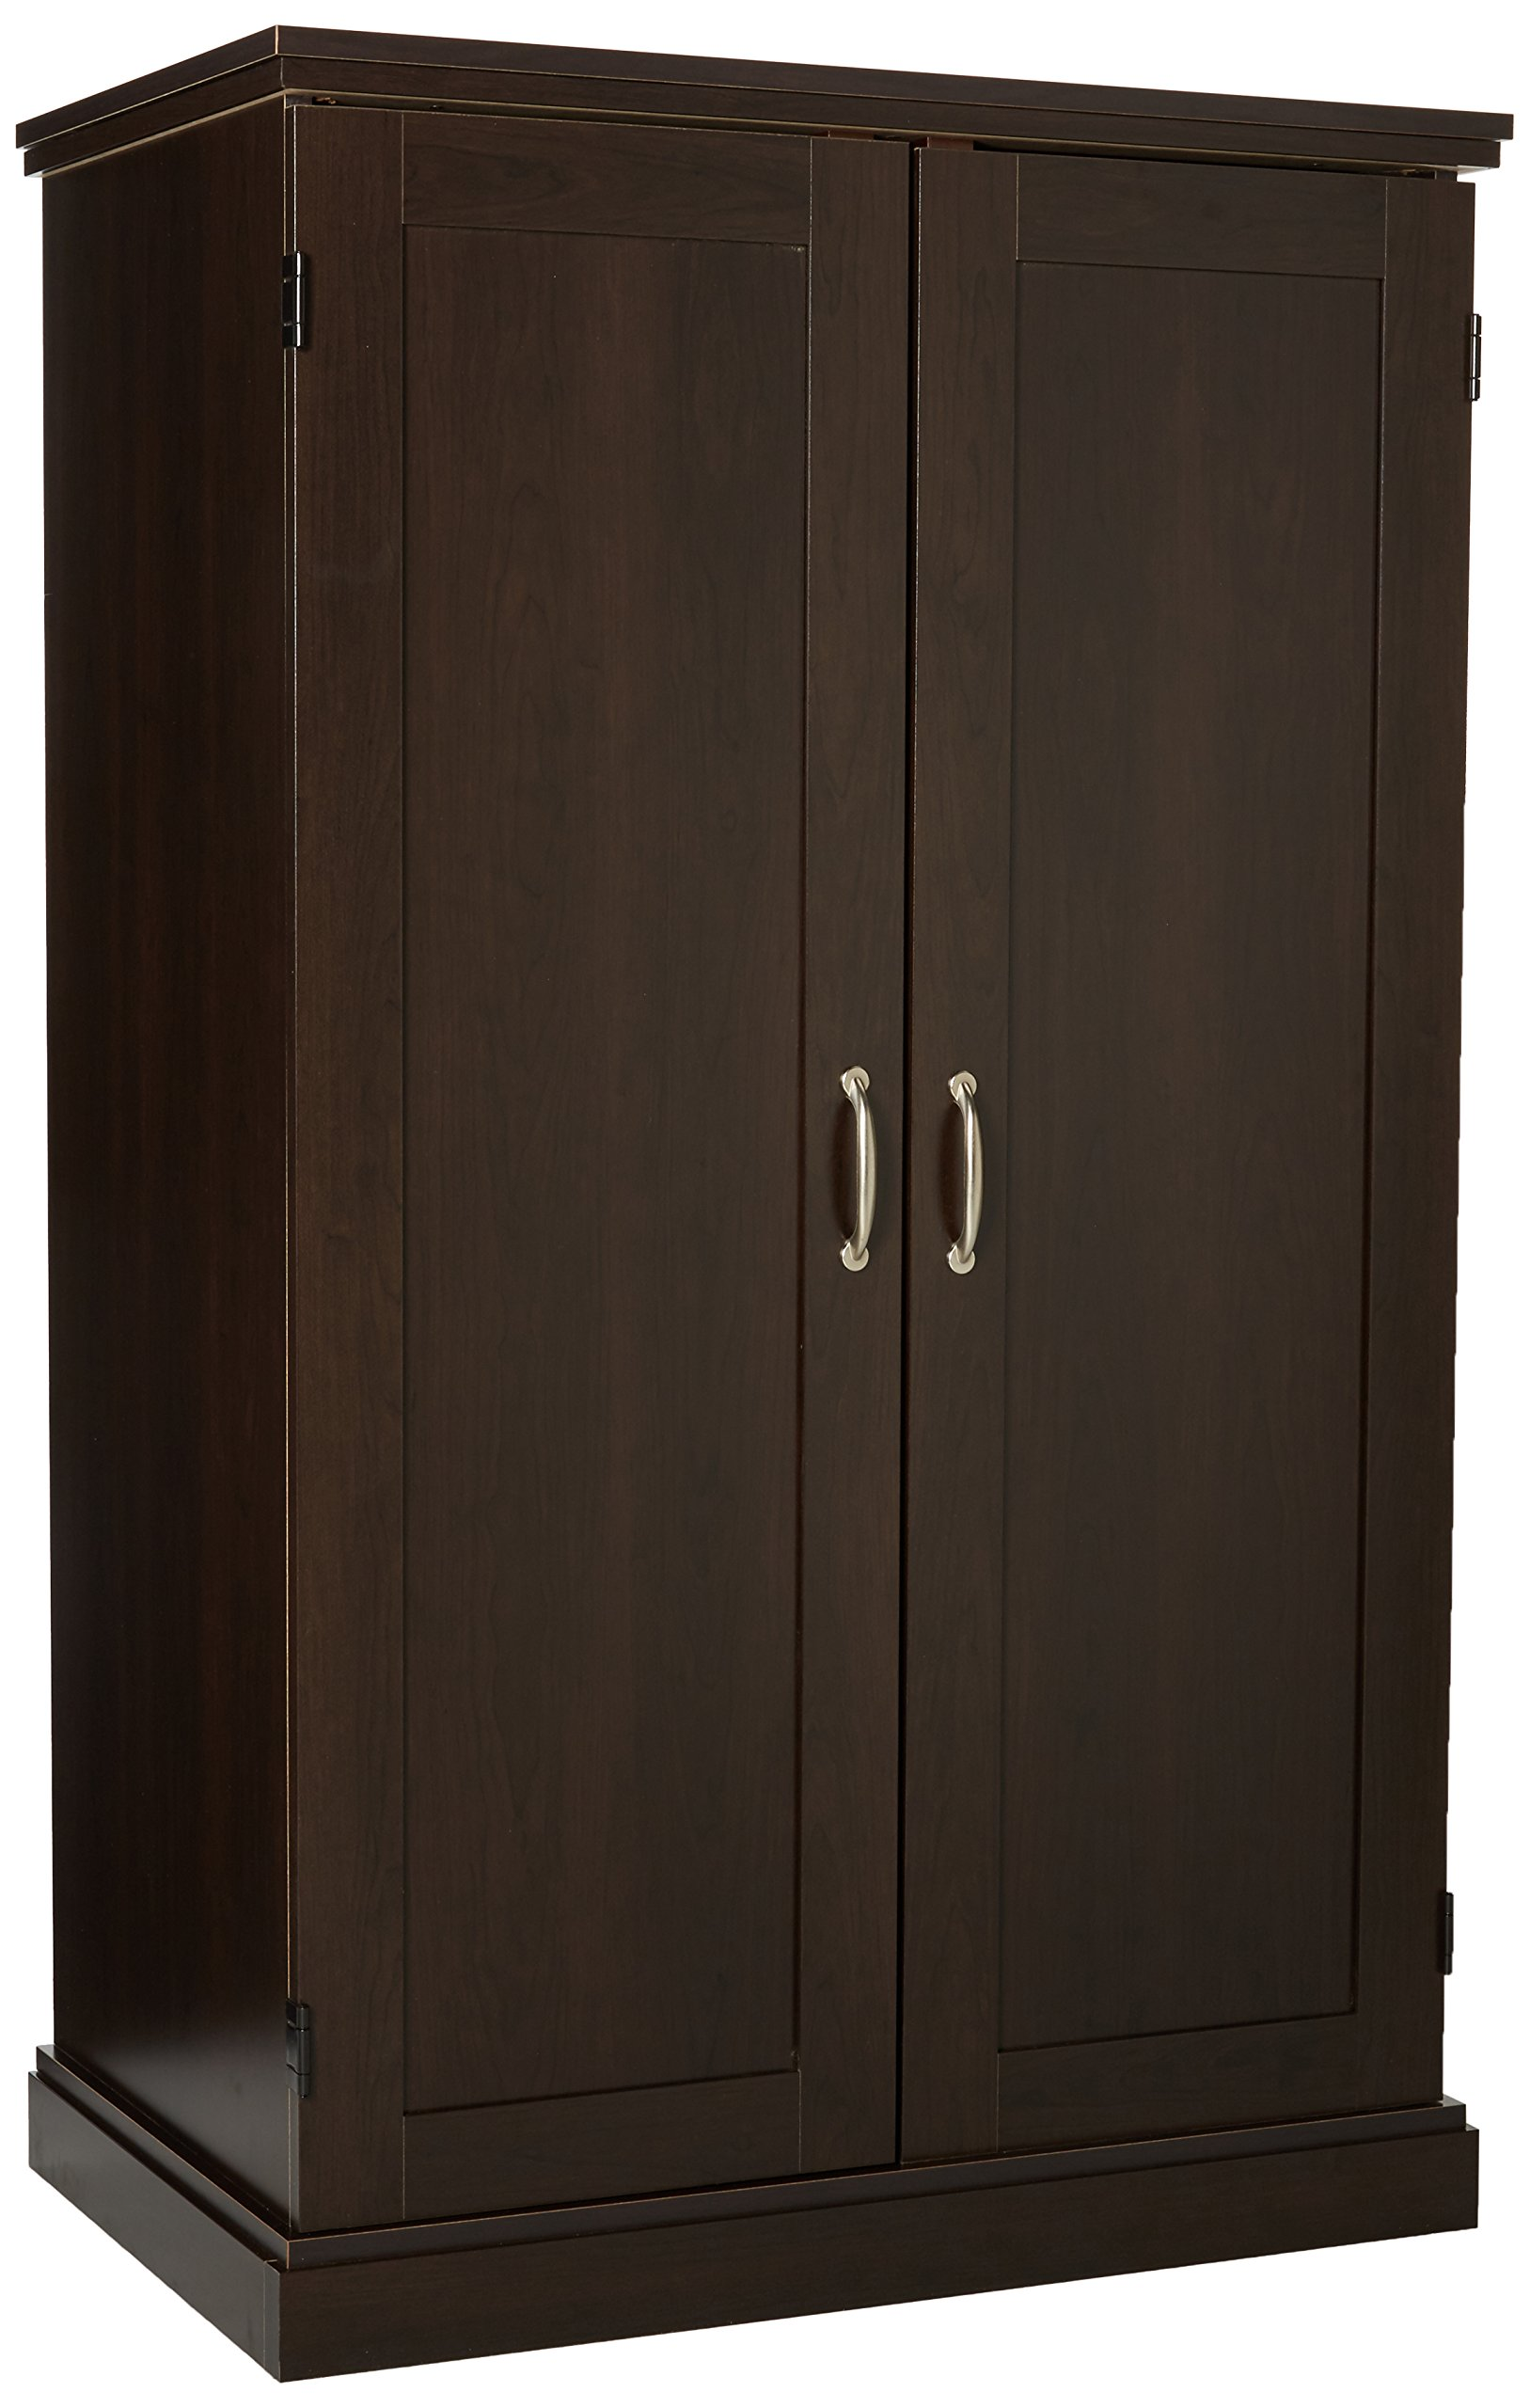 Sauder Computer Armoire, Cinnamon Cherry Finish